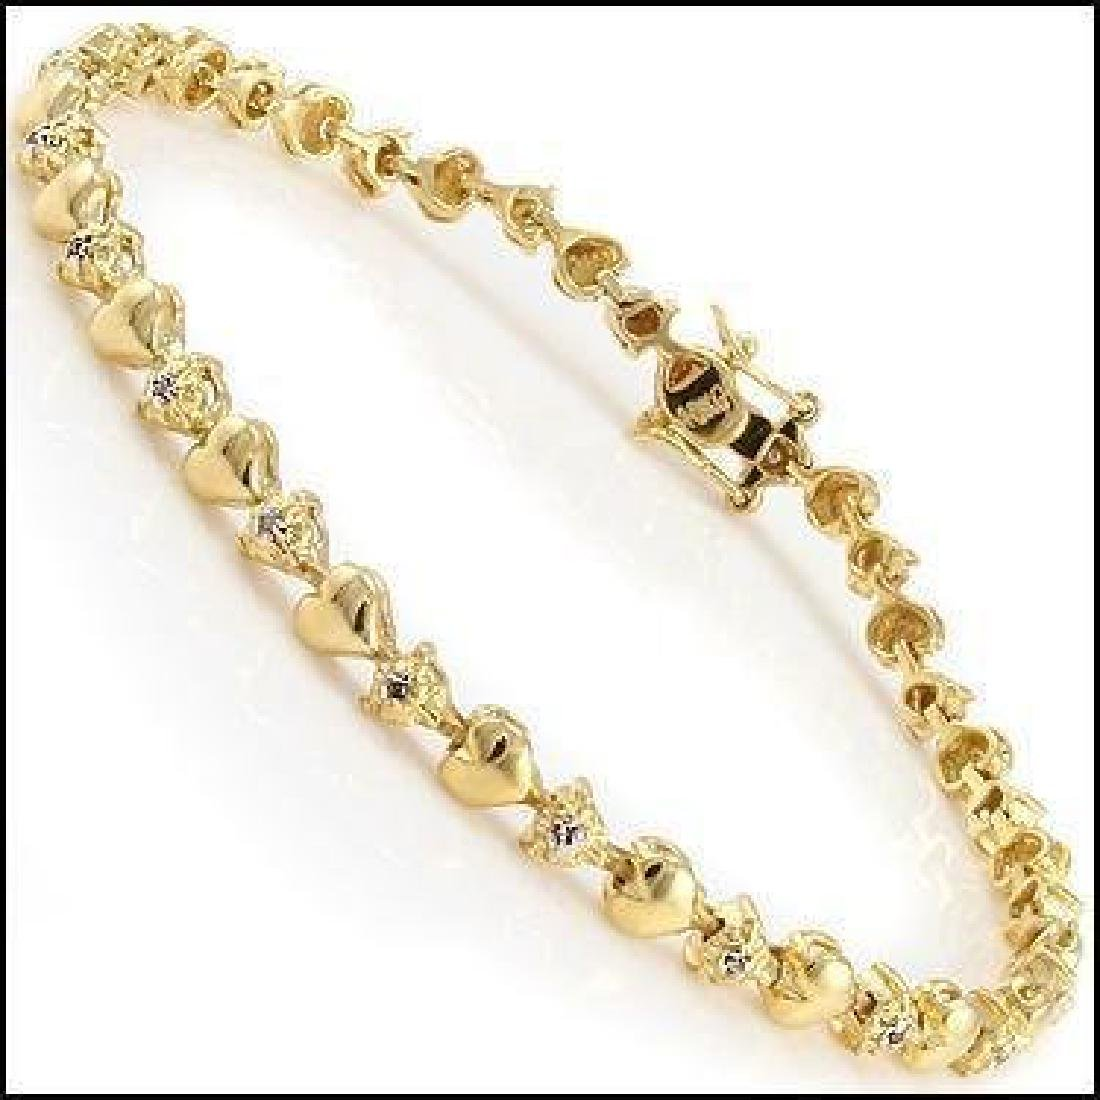 Jewelry Sale 0.69 CT Diamond Designer Bracelet